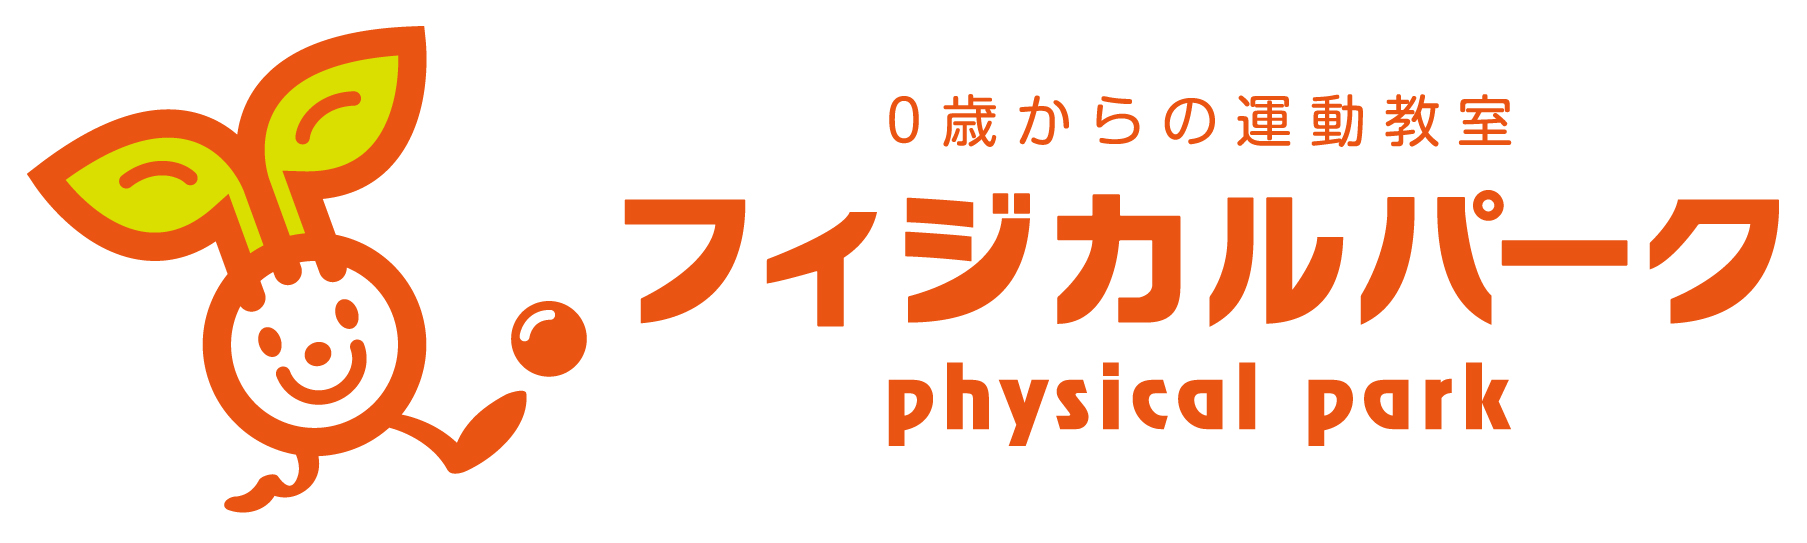 physical park_logo_yoko_4C_CS4